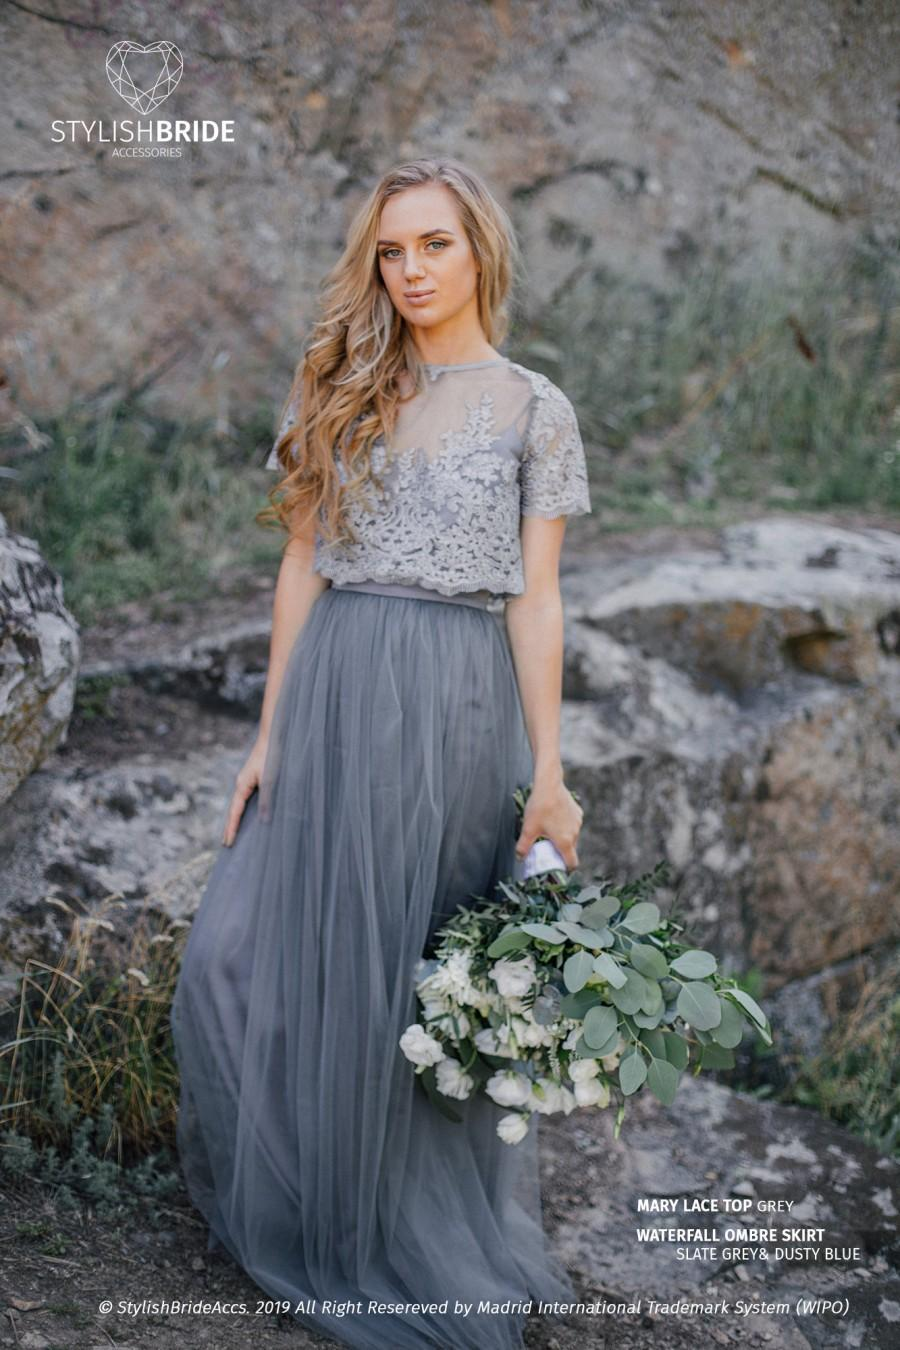 Wedding - Ombre Slate Grey&Dusty Blue Mary Dress, Long Grey Waterfall Bridesmaids or Engagement Skirt, Prom Lace Dresses Plus Size Dark Grey